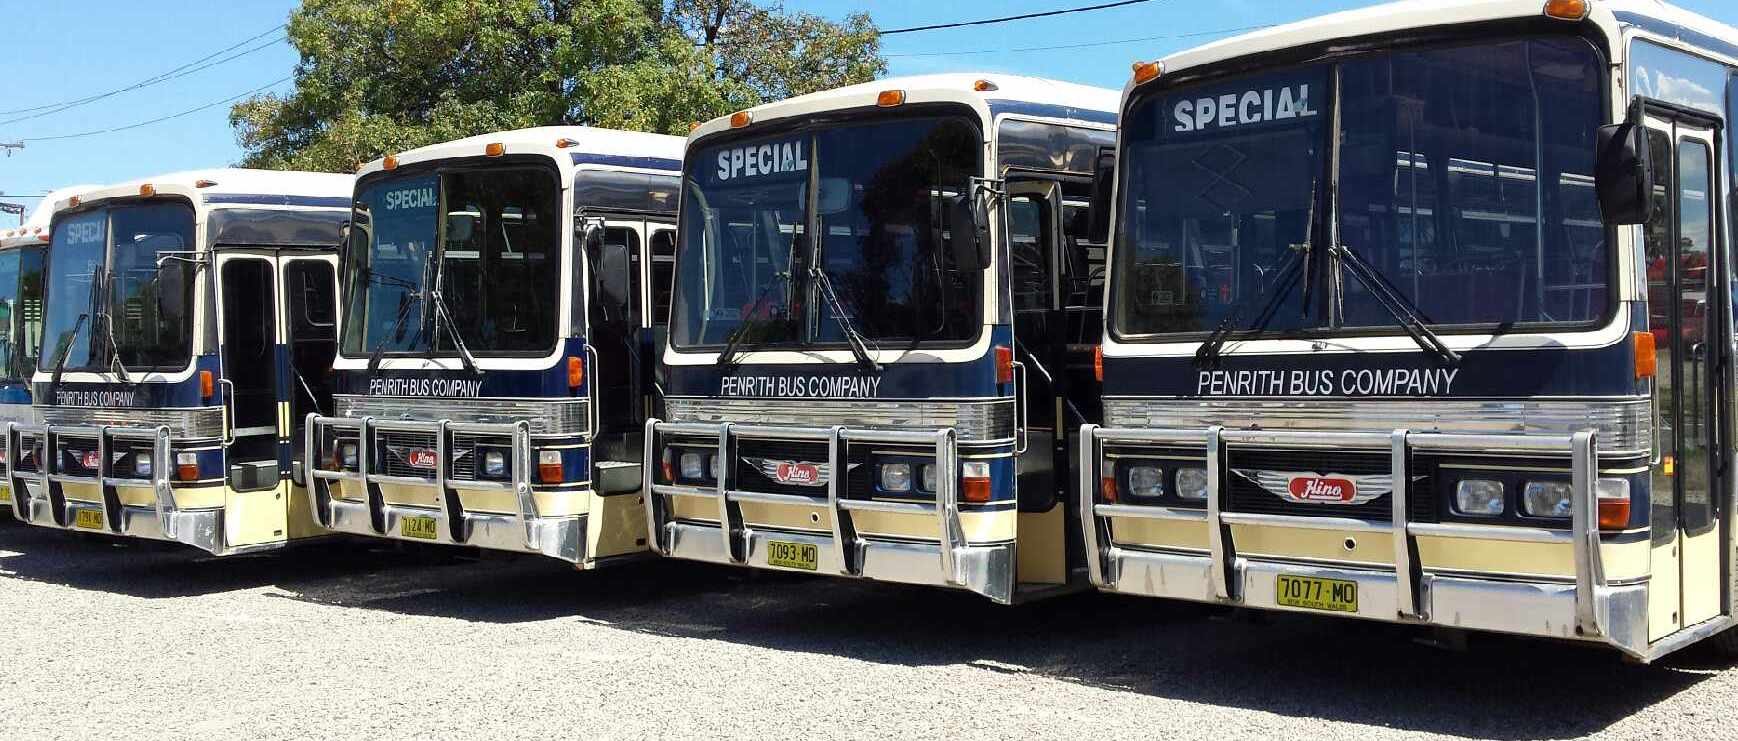 Penrith_Bus_Company